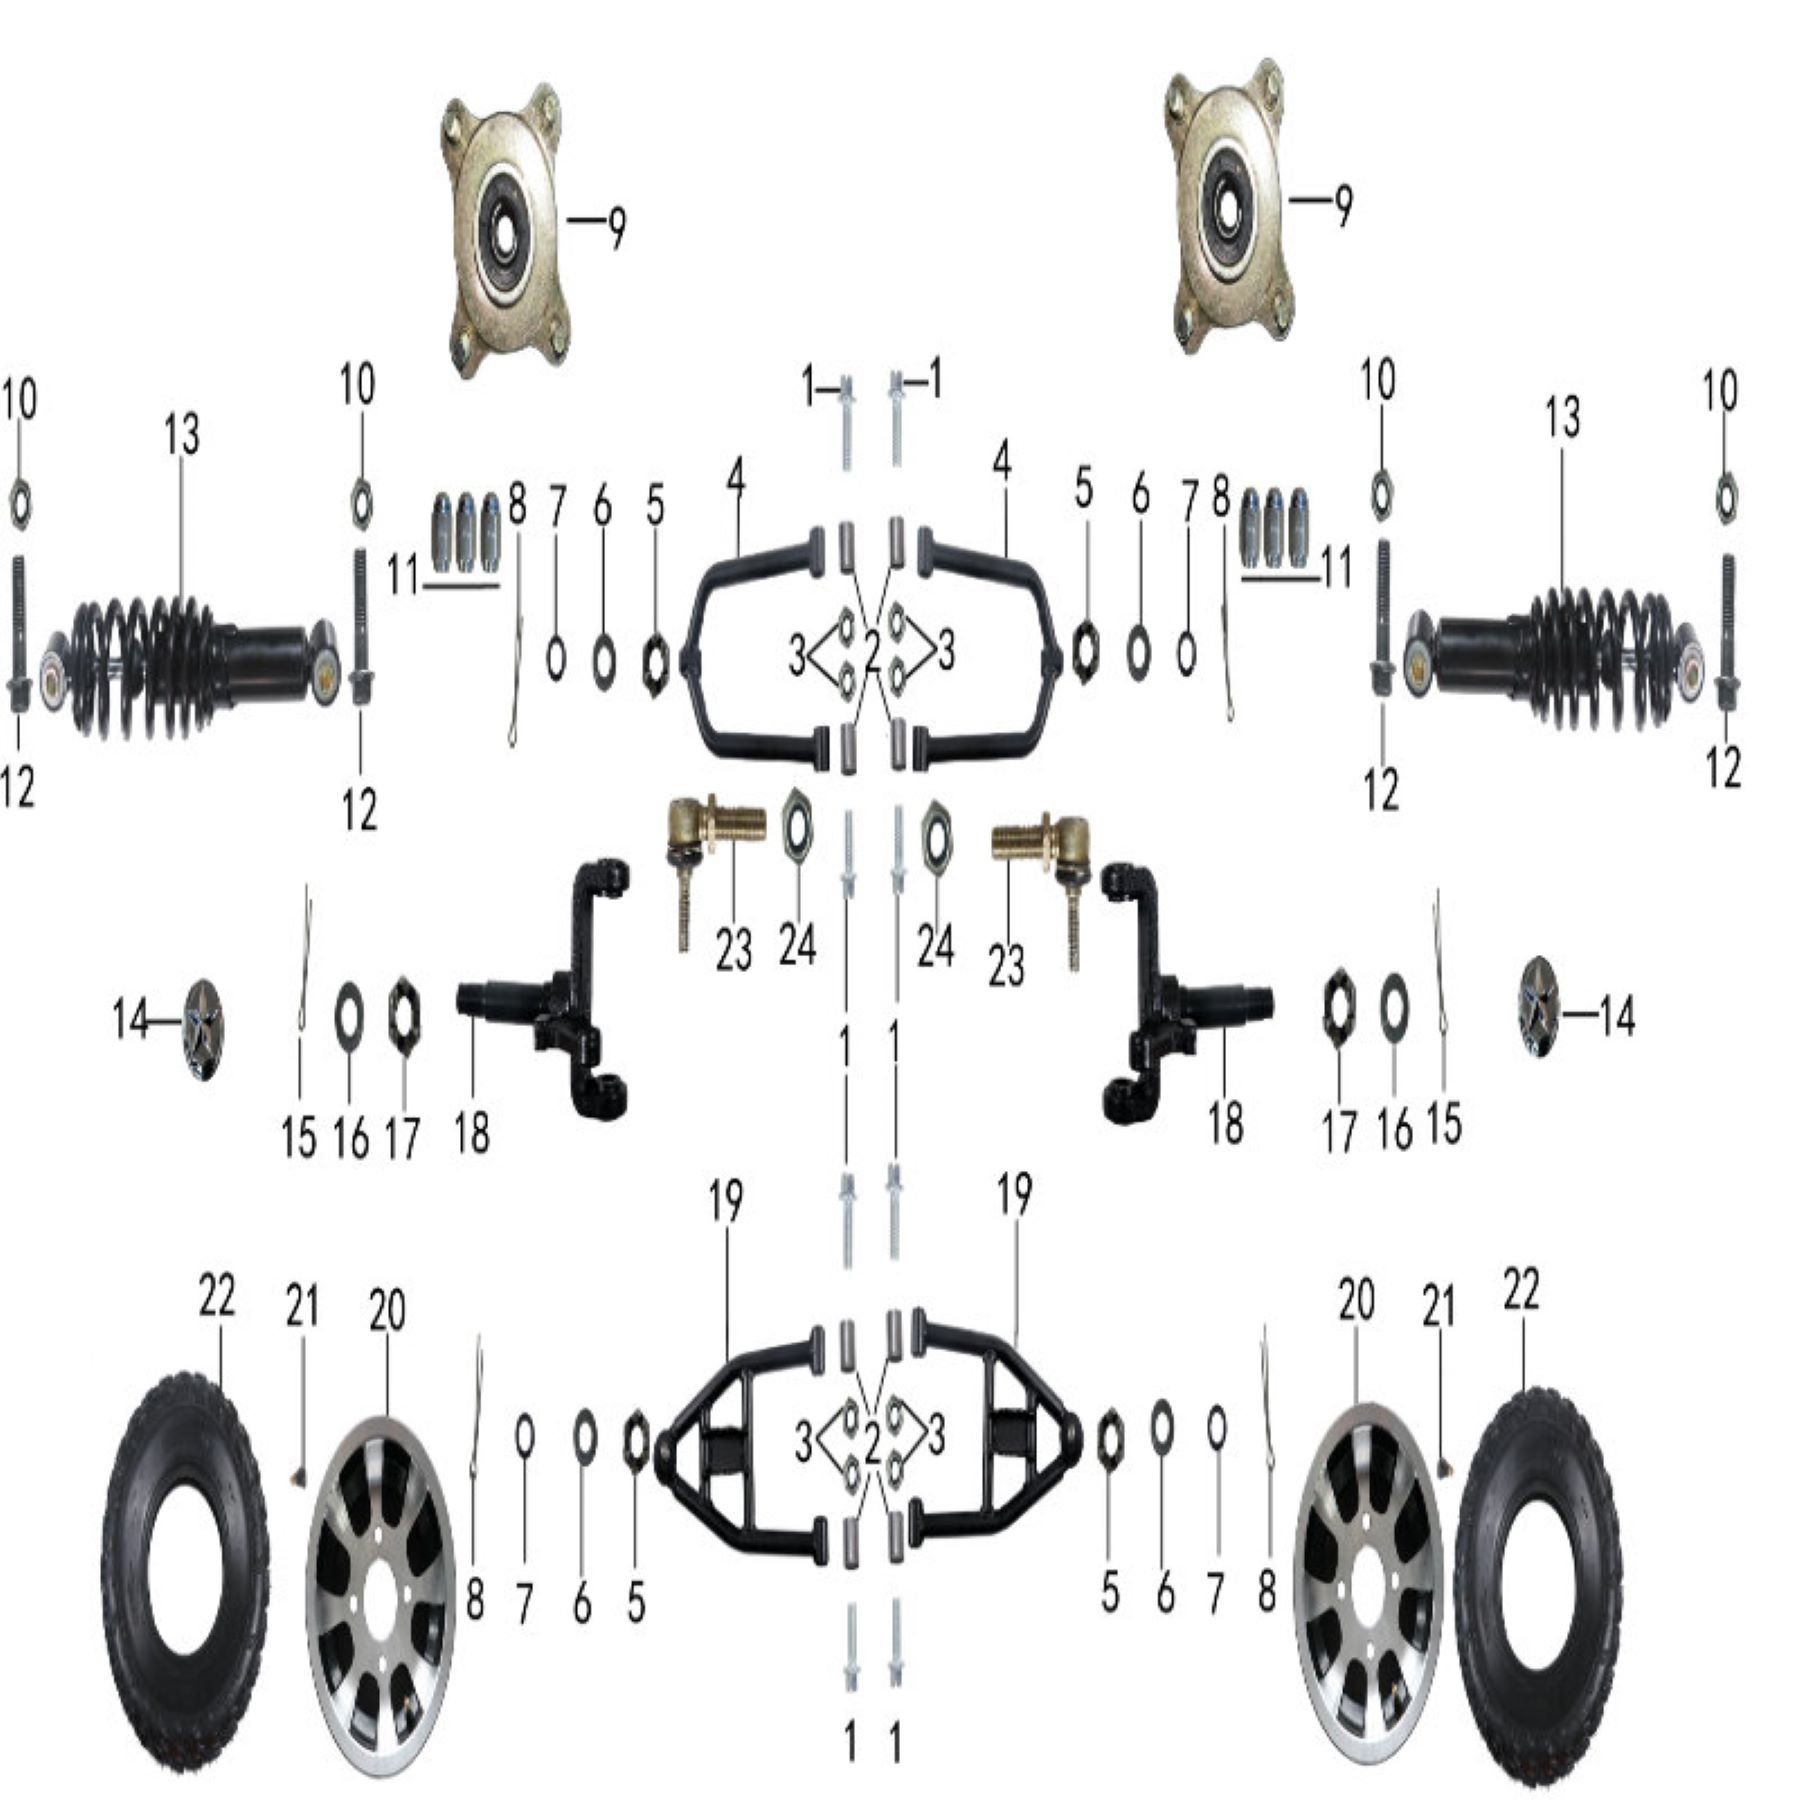 parts for front suspension of atv taotao bull 200-atv lachute